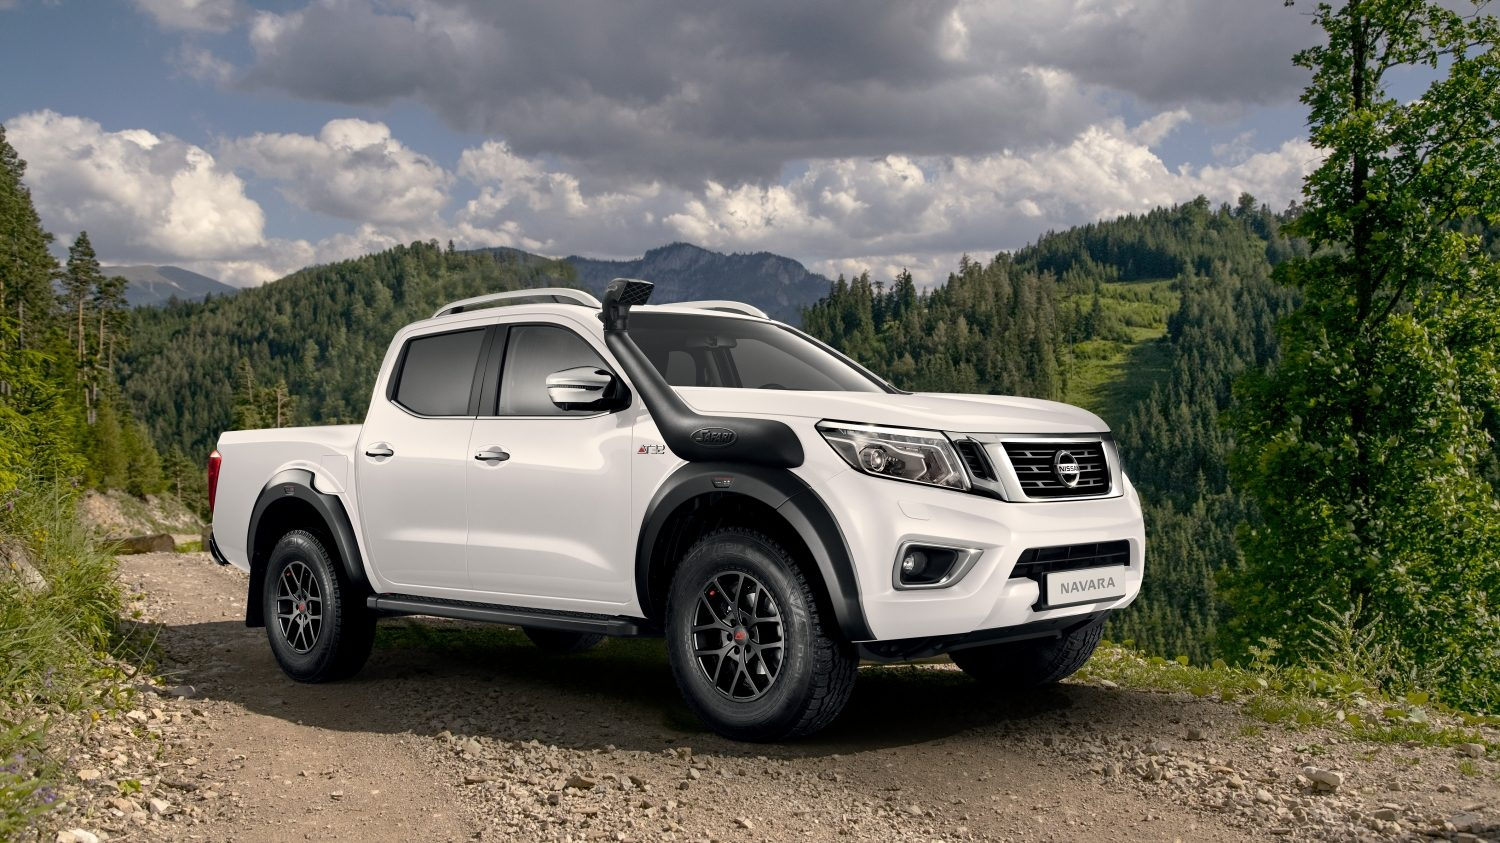 nissan navara off roader at32 pick up truck nissan. Black Bedroom Furniture Sets. Home Design Ideas